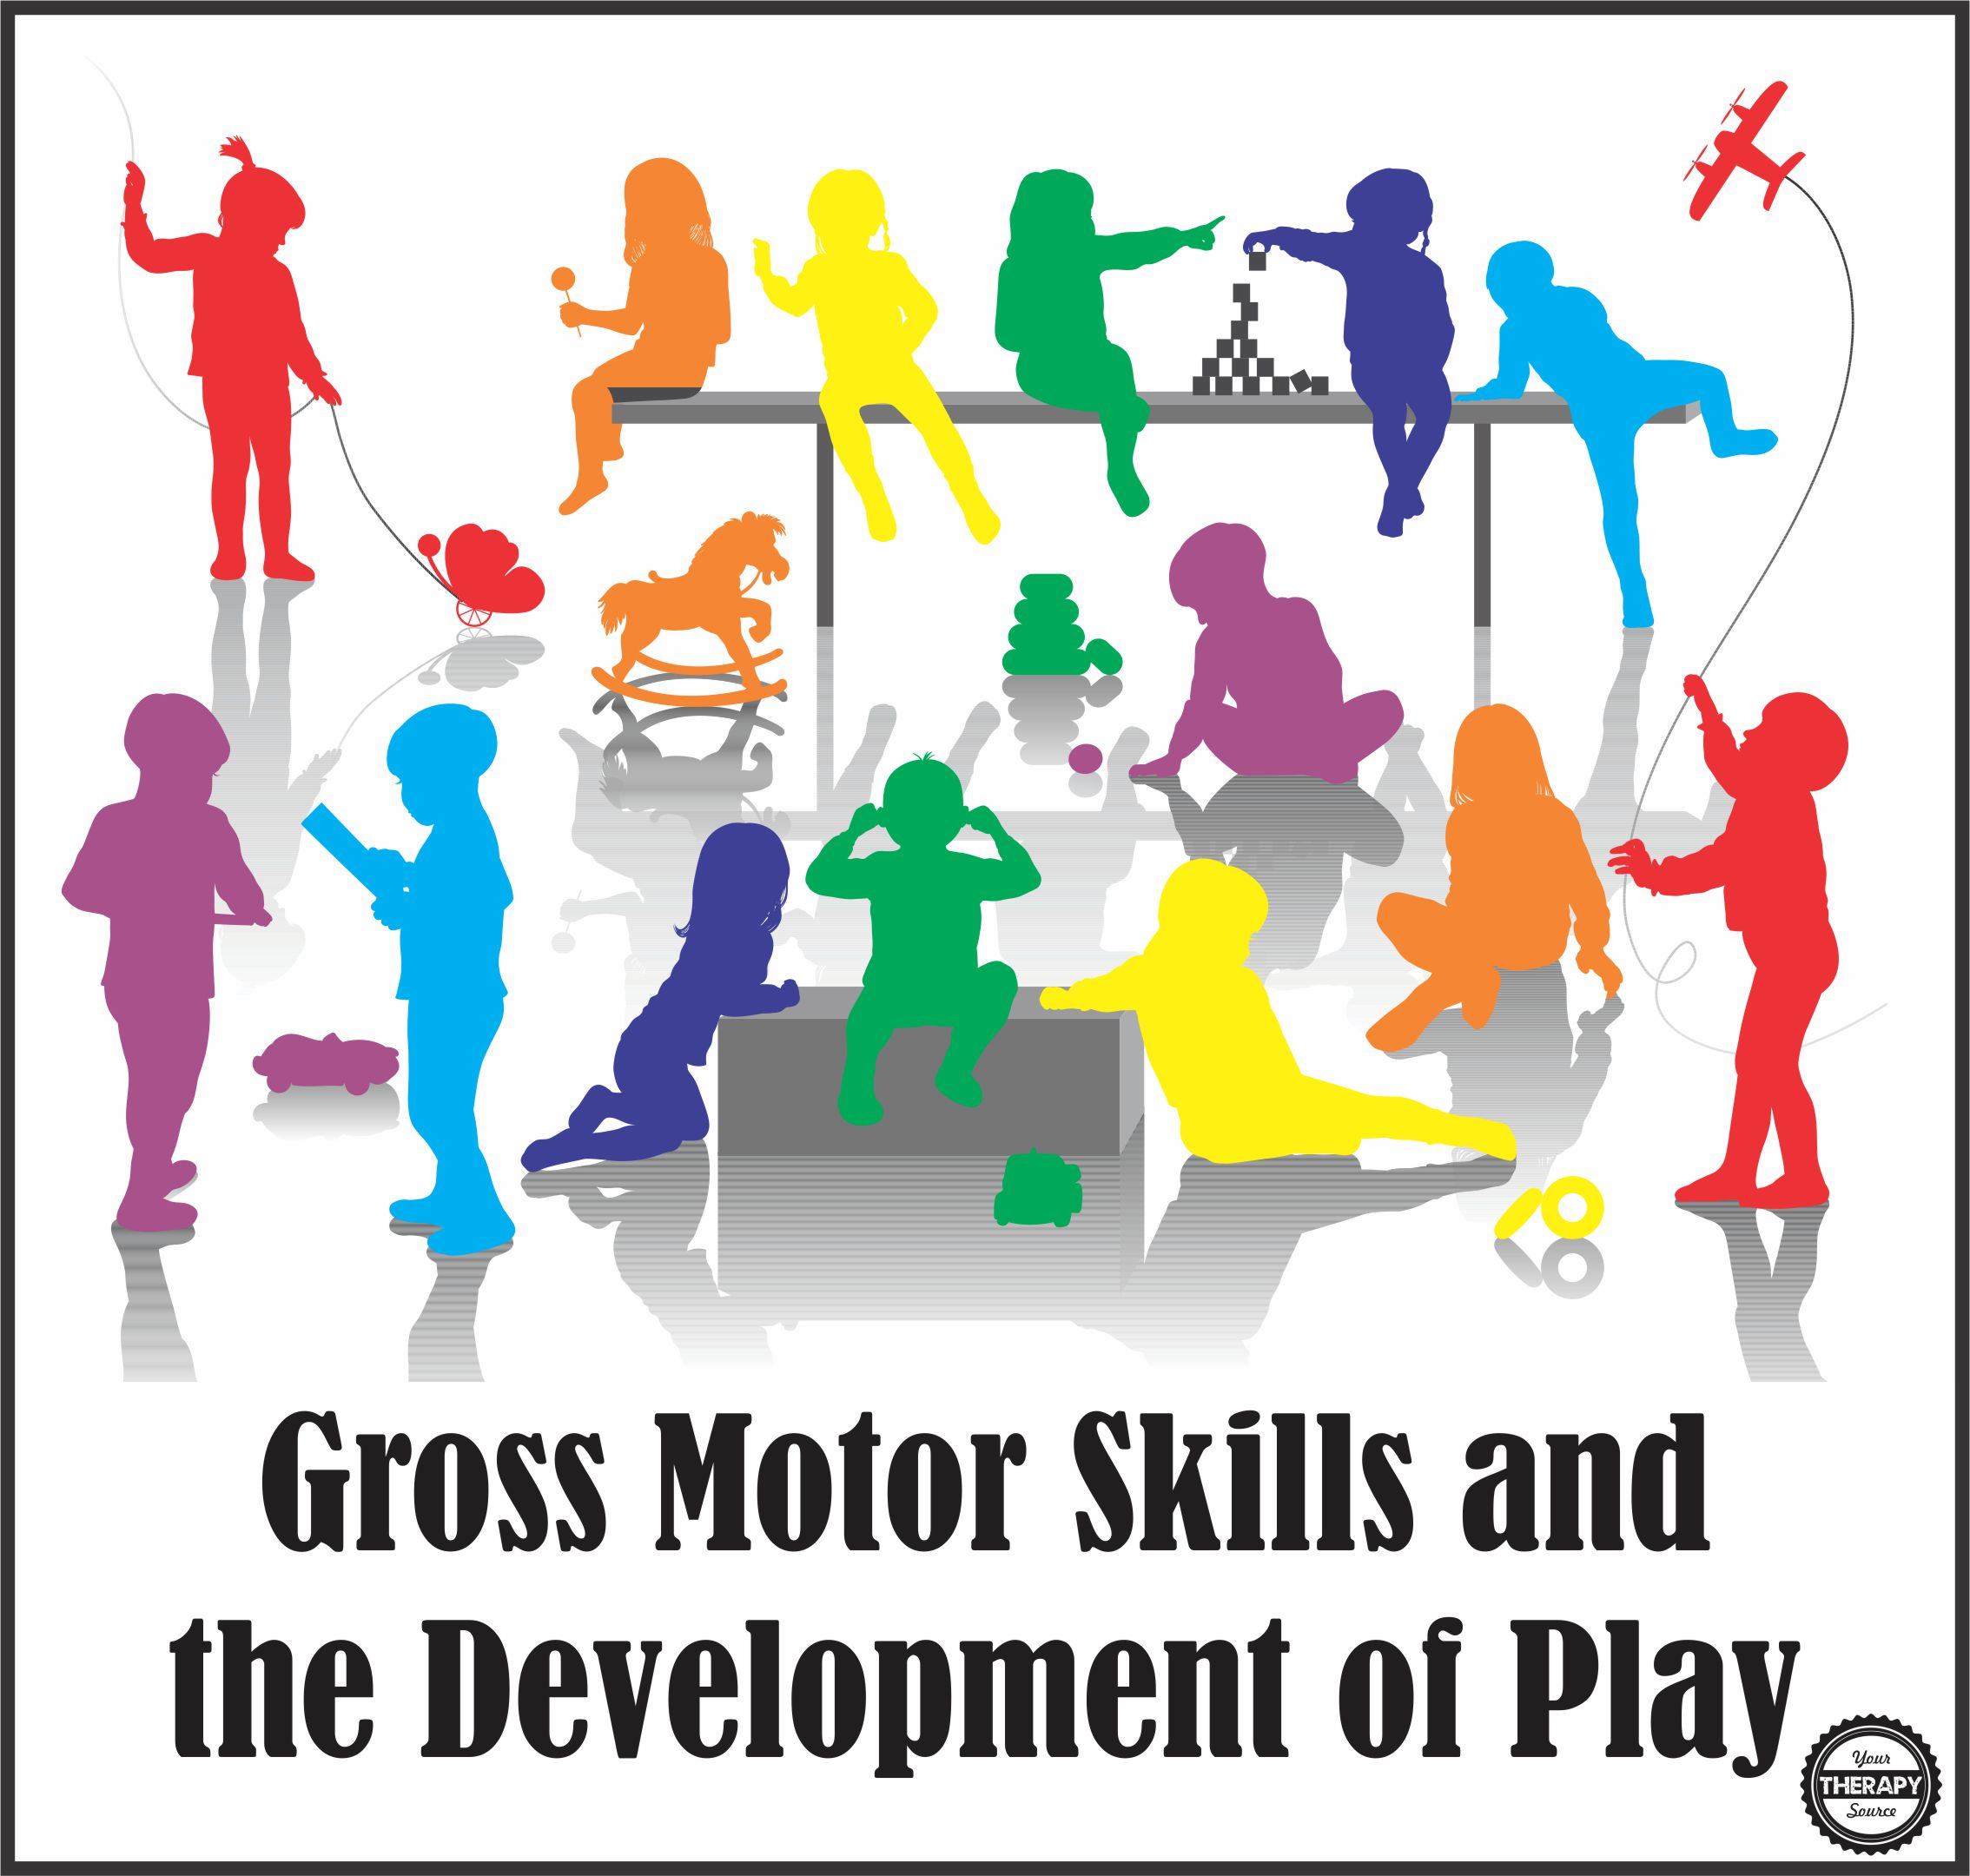 Gross Motor Skills and Development of Play